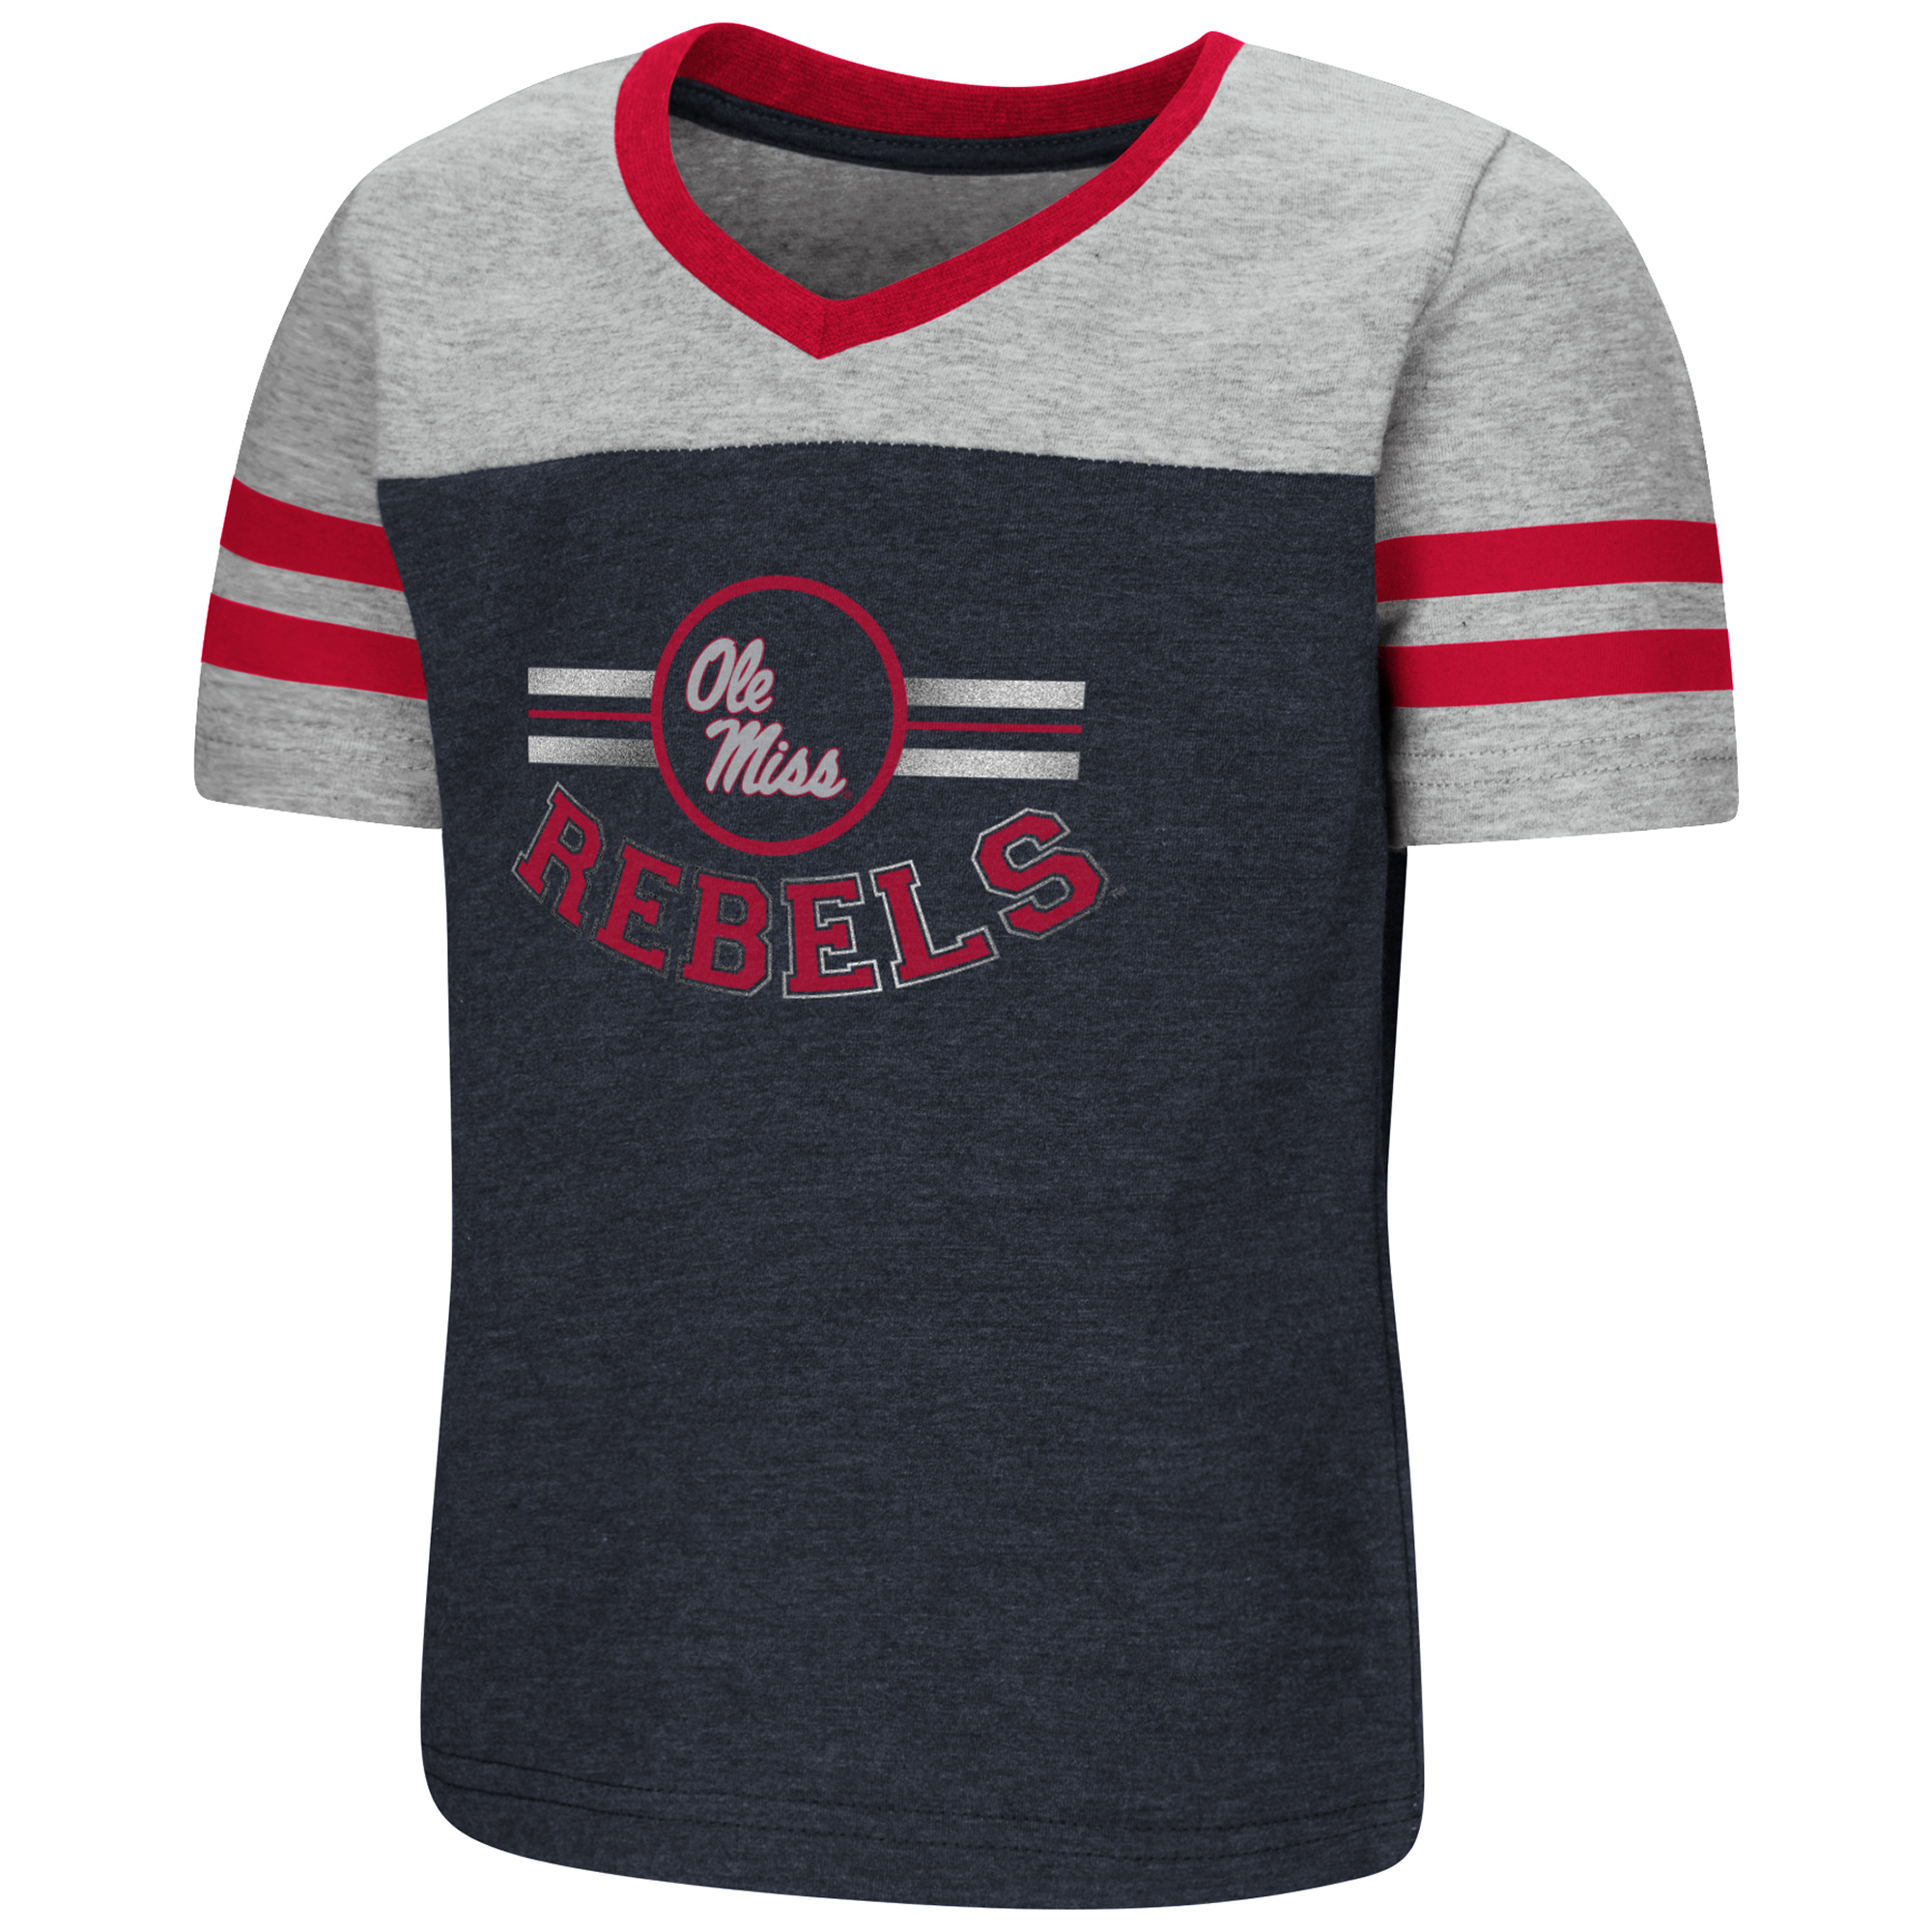 Toddler Girls Pee Wee Football V-Neck